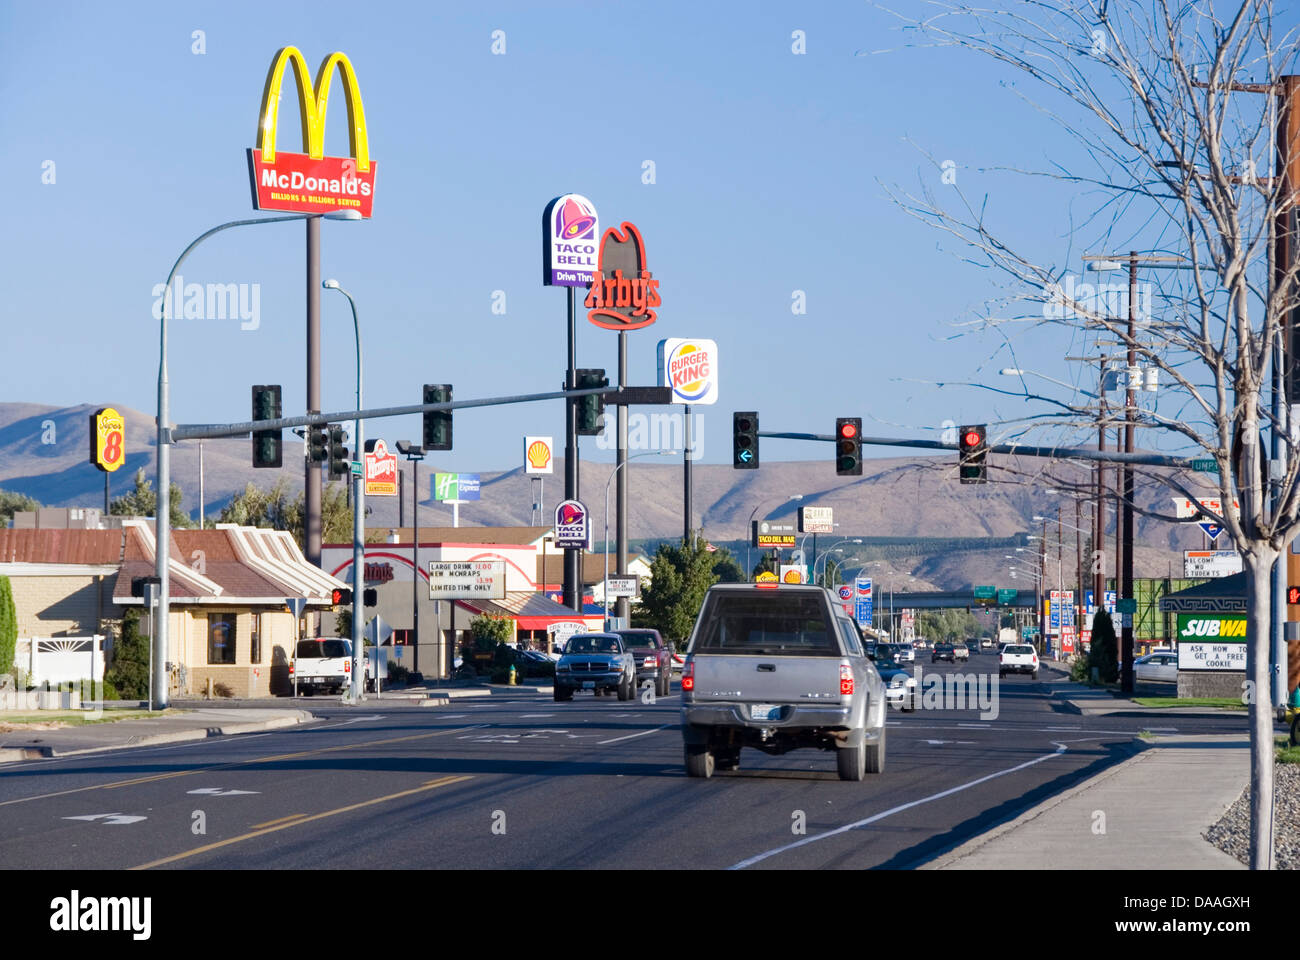 Canyon Road offers a variety of fast food joints from MacDonalds to Taco Bell, Ellensburg, Kittitas County, Washington Stock Photo